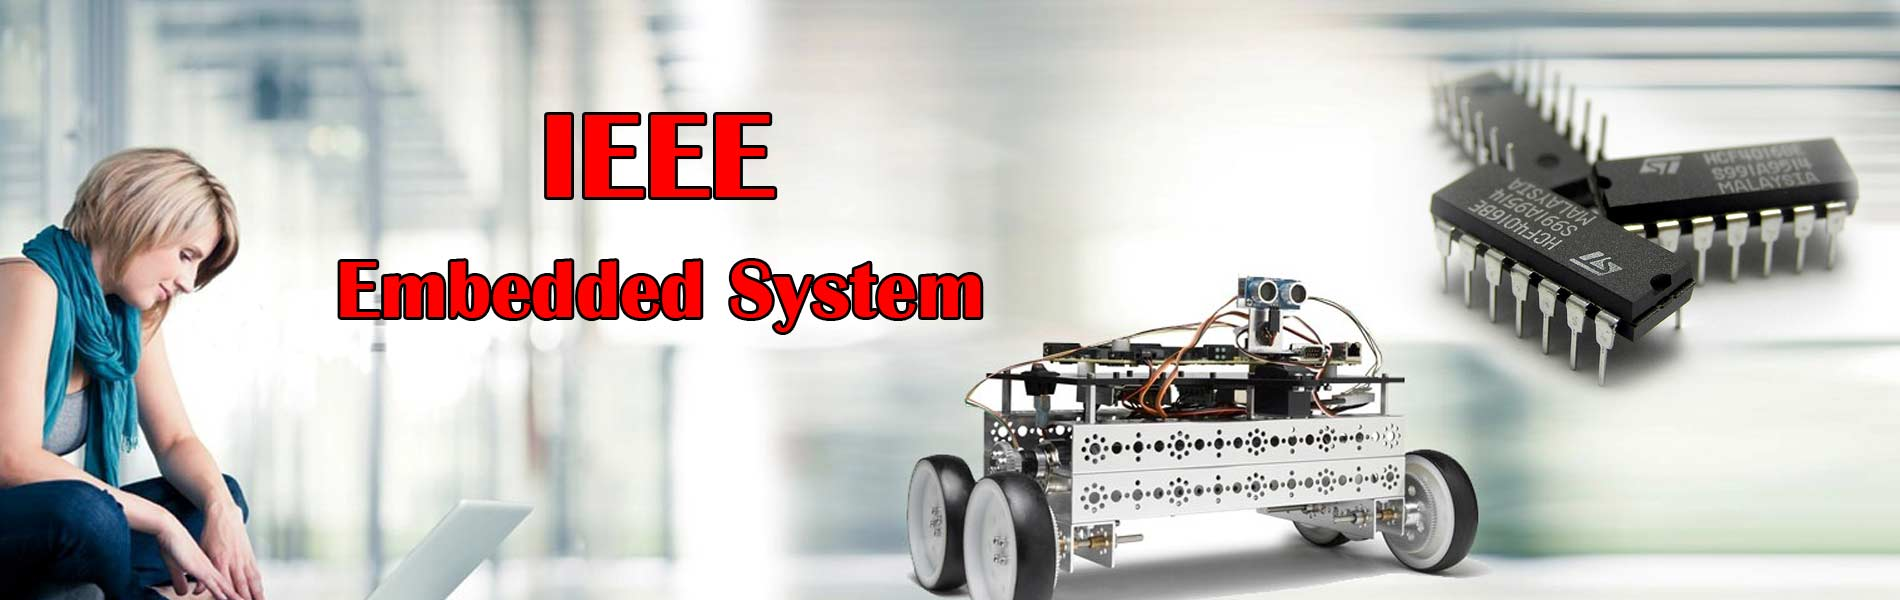 ieee-embeddedsystem-finalyear-project-in-chennai